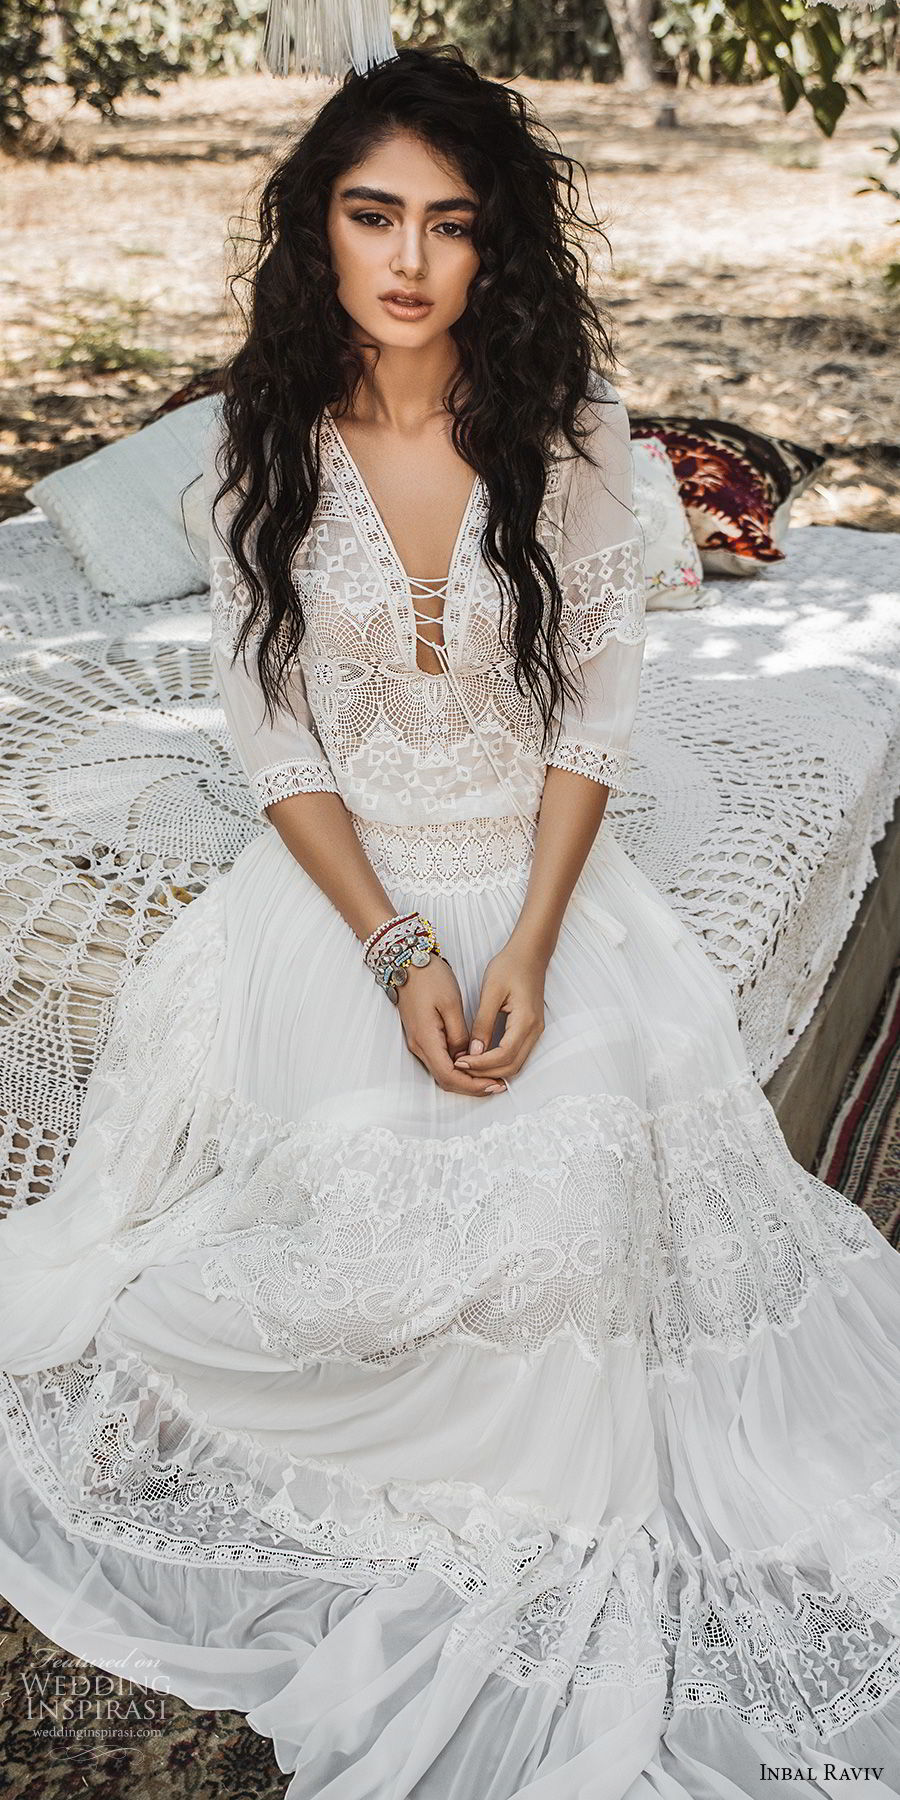 Gypsy Wedding Dresses Prices